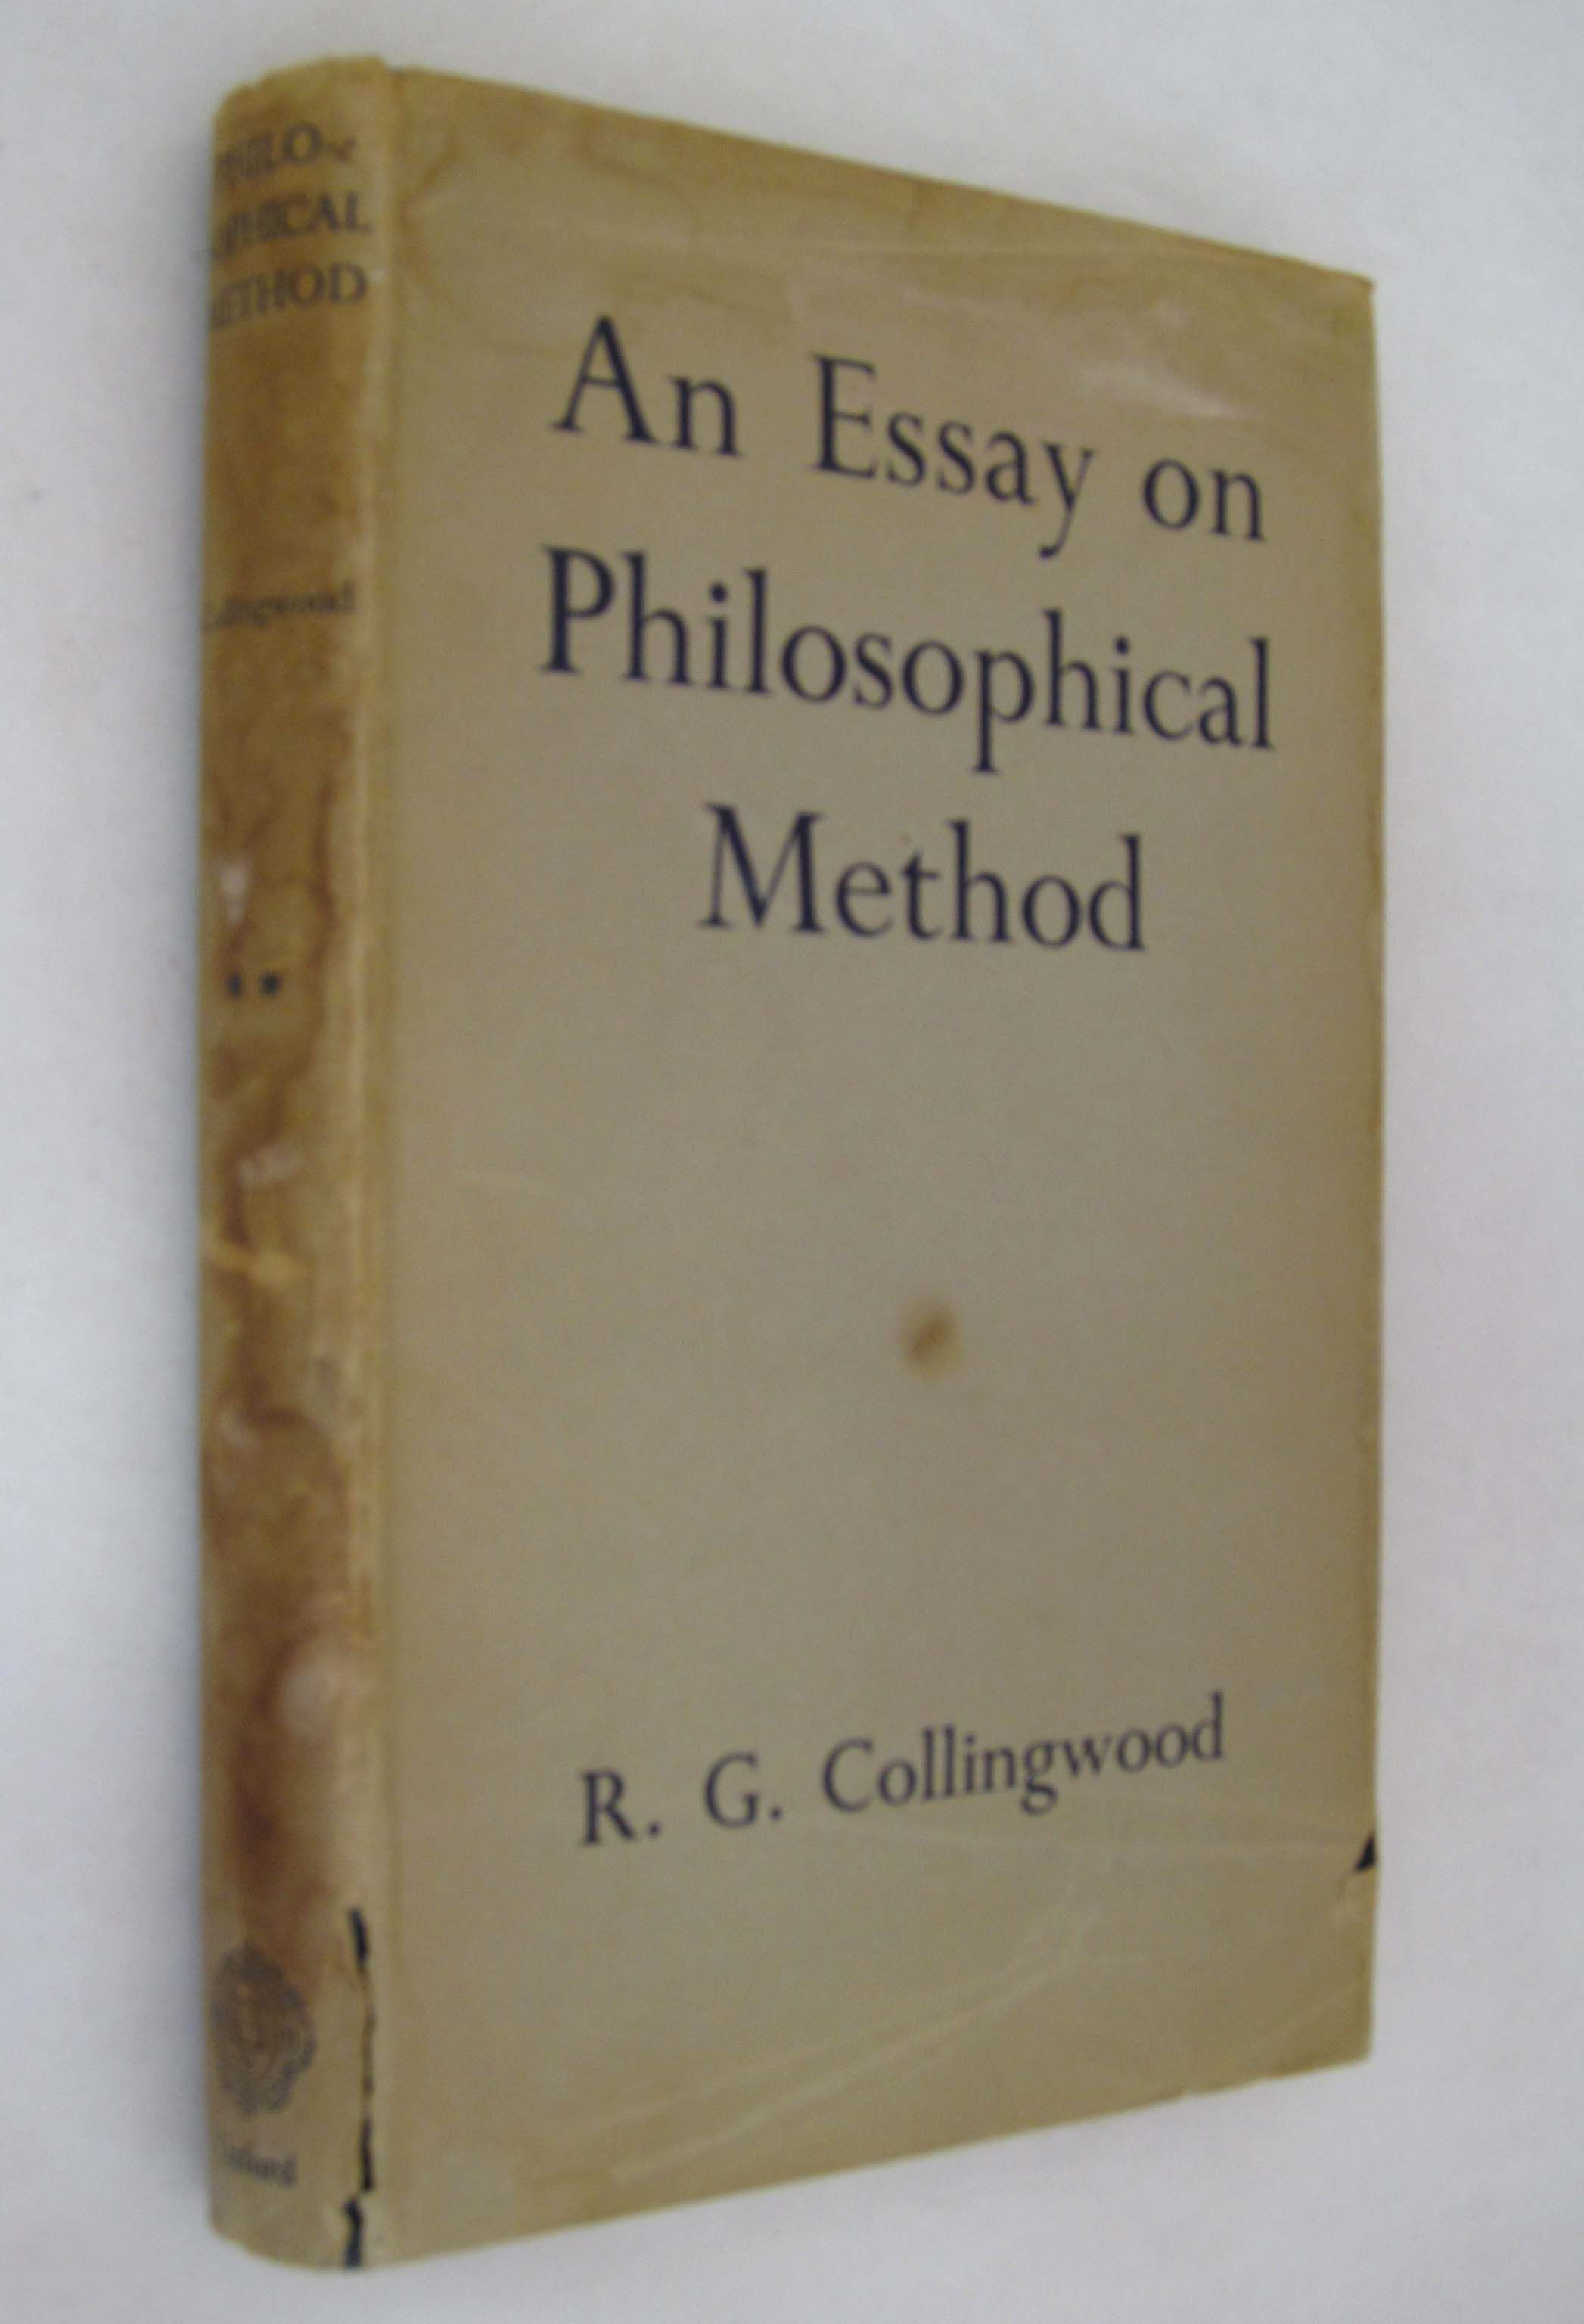 an essay in philosophical method collingwood Charles hartshorne, an essay on philosophical method r g collingwood , the international journal of ethics 44, no 3 (apr, 1934): 357.